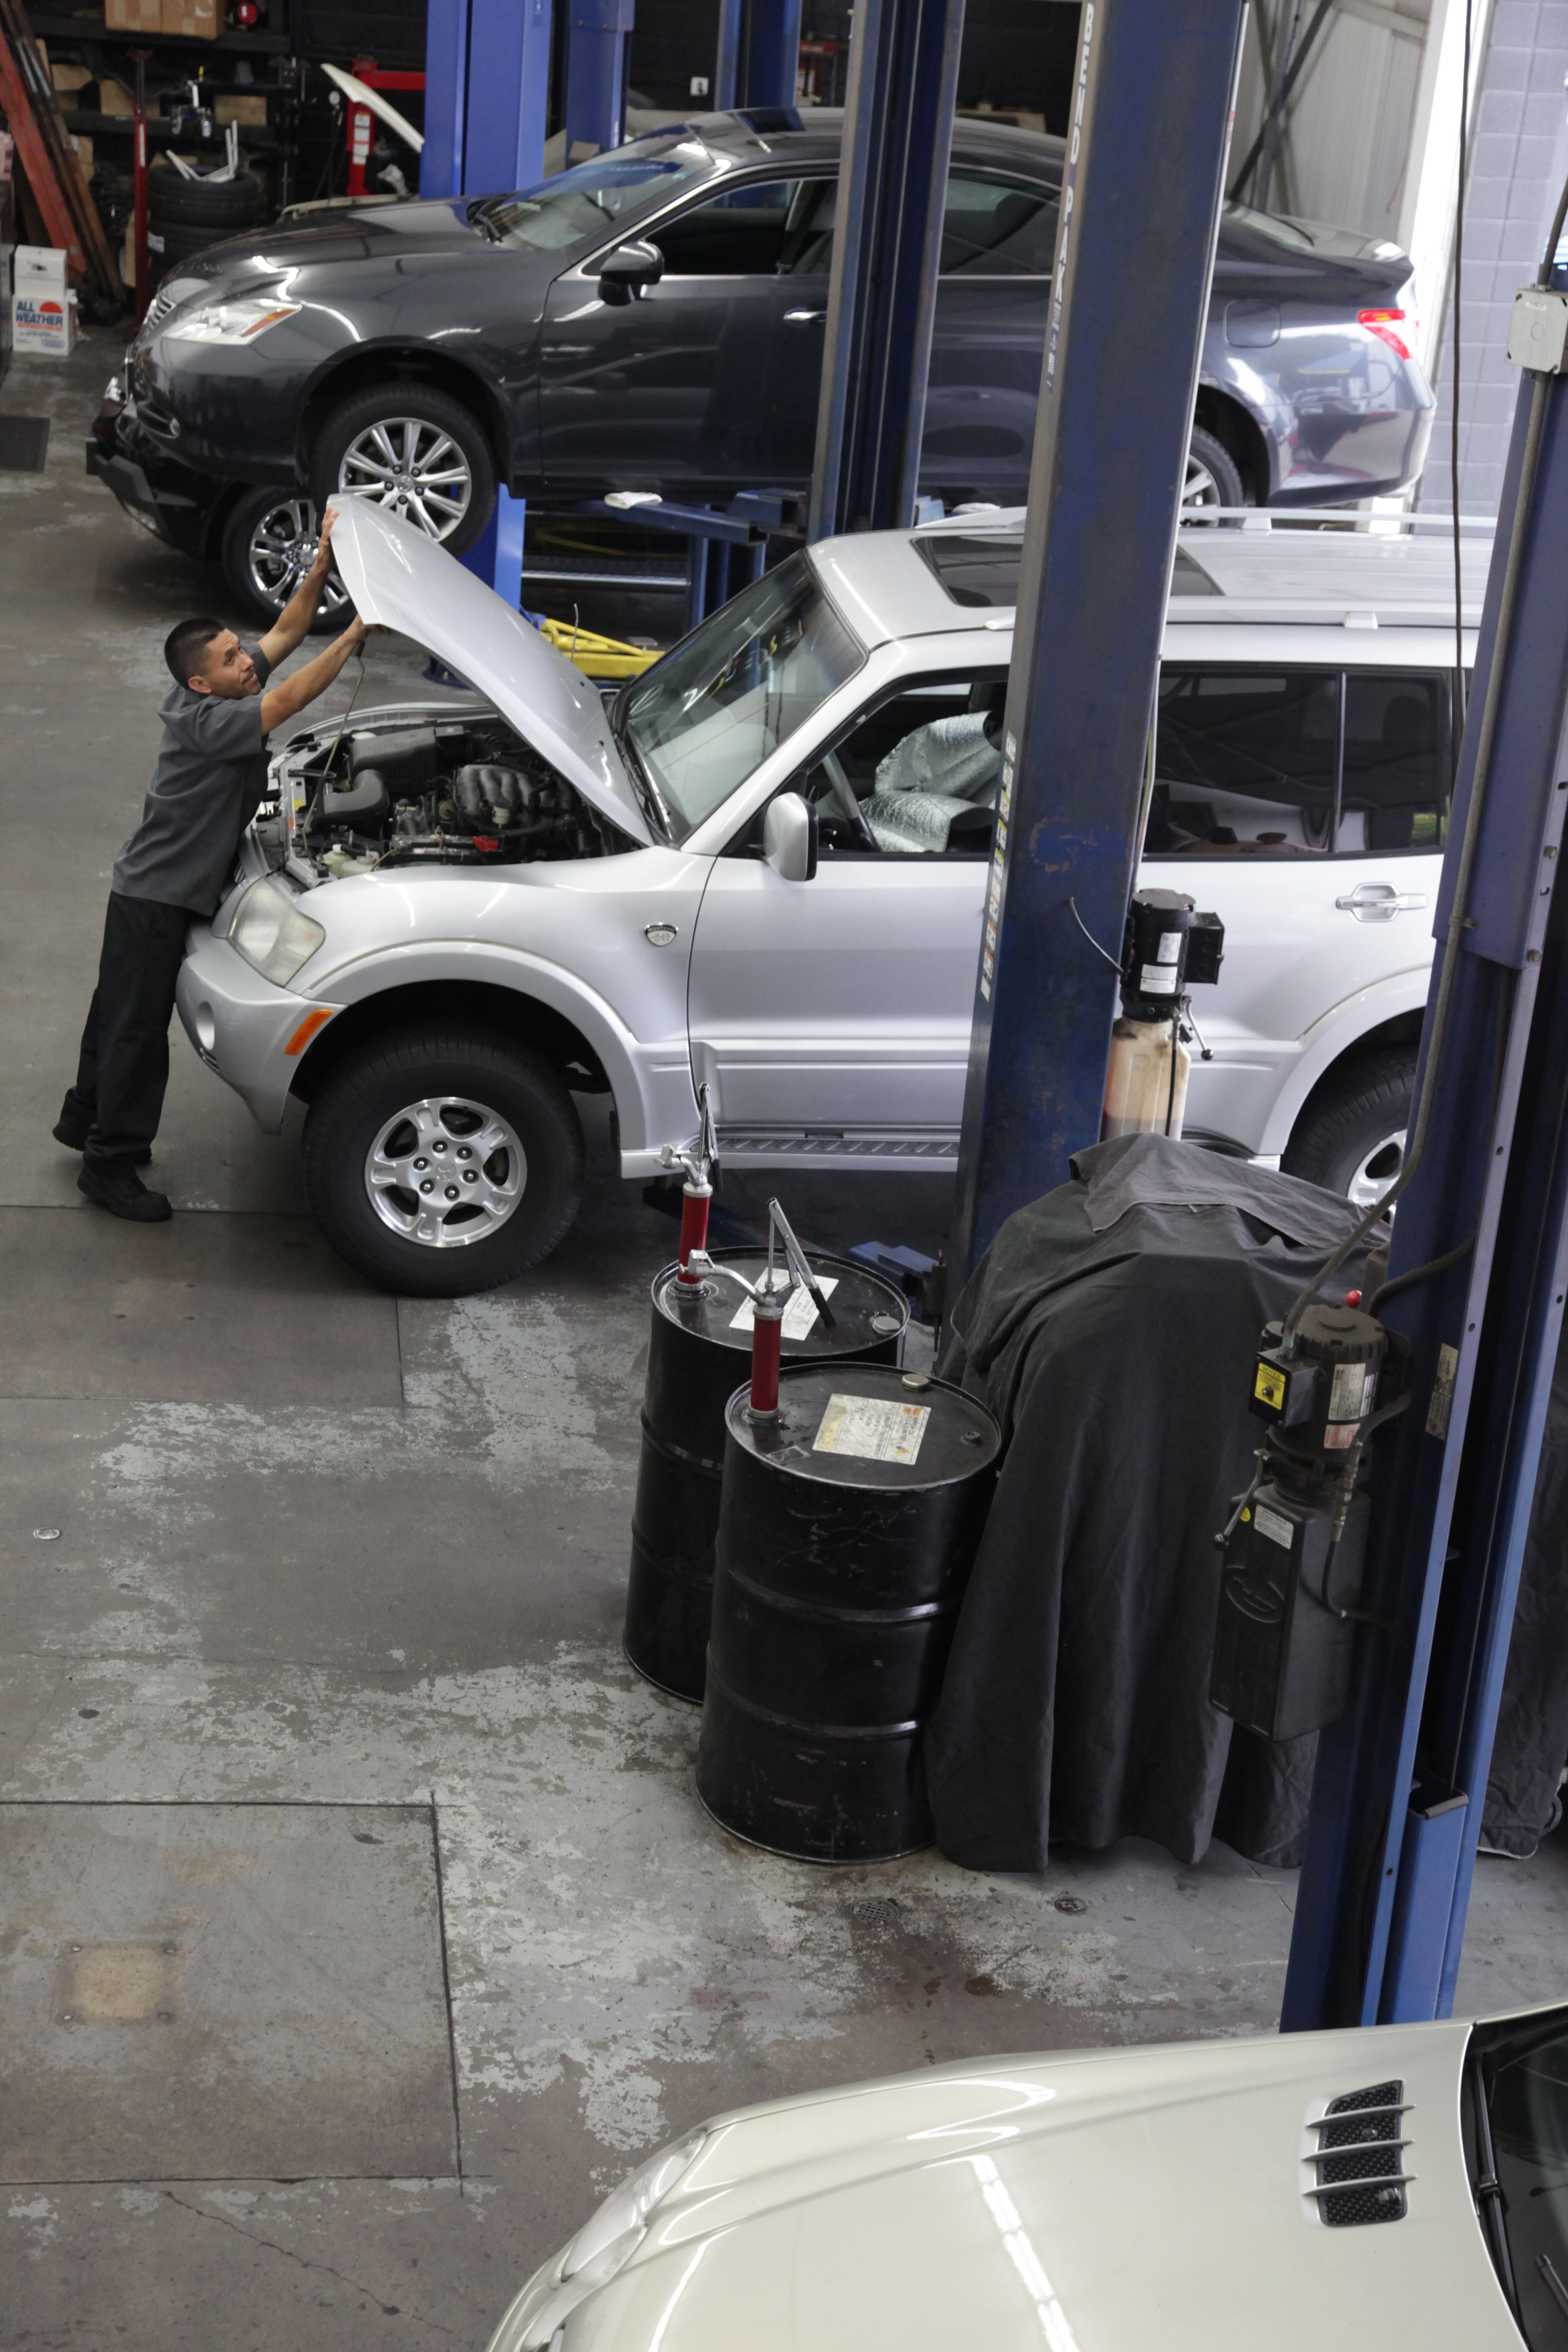 Routine service is essential for quality performance and